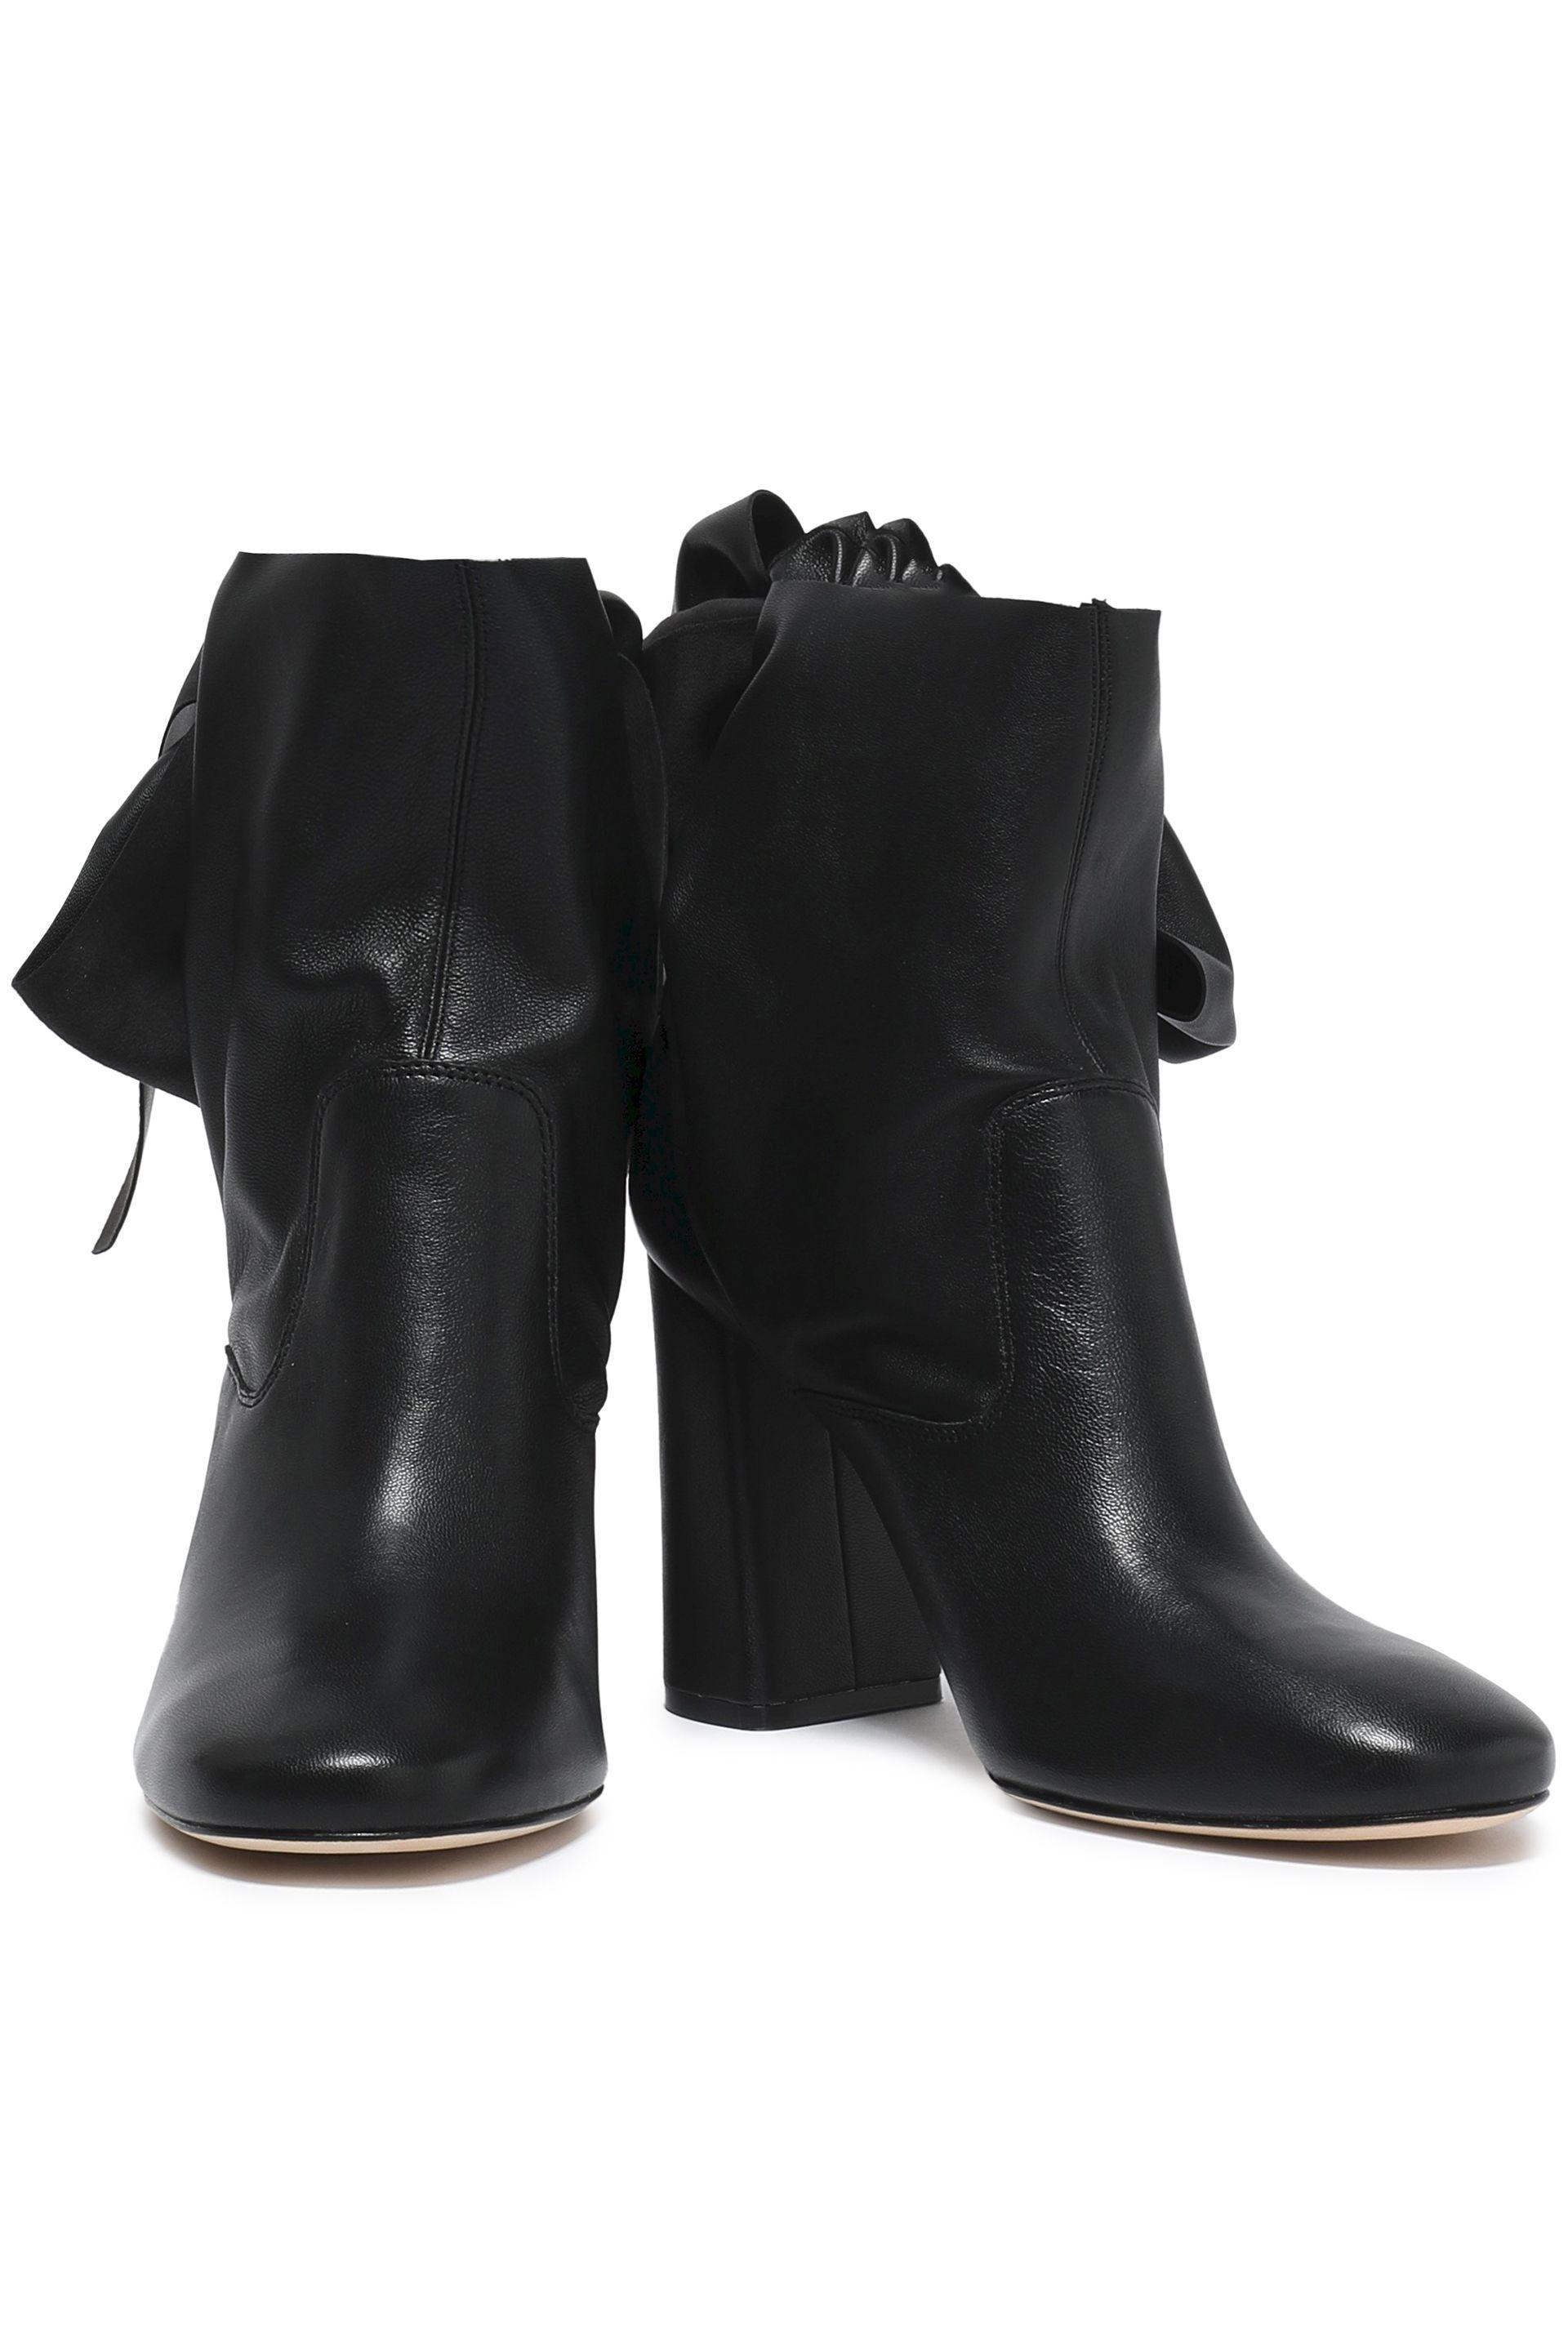 Sigerson Morrison Leather Sally Knotted Suede Ankle Boots in Black